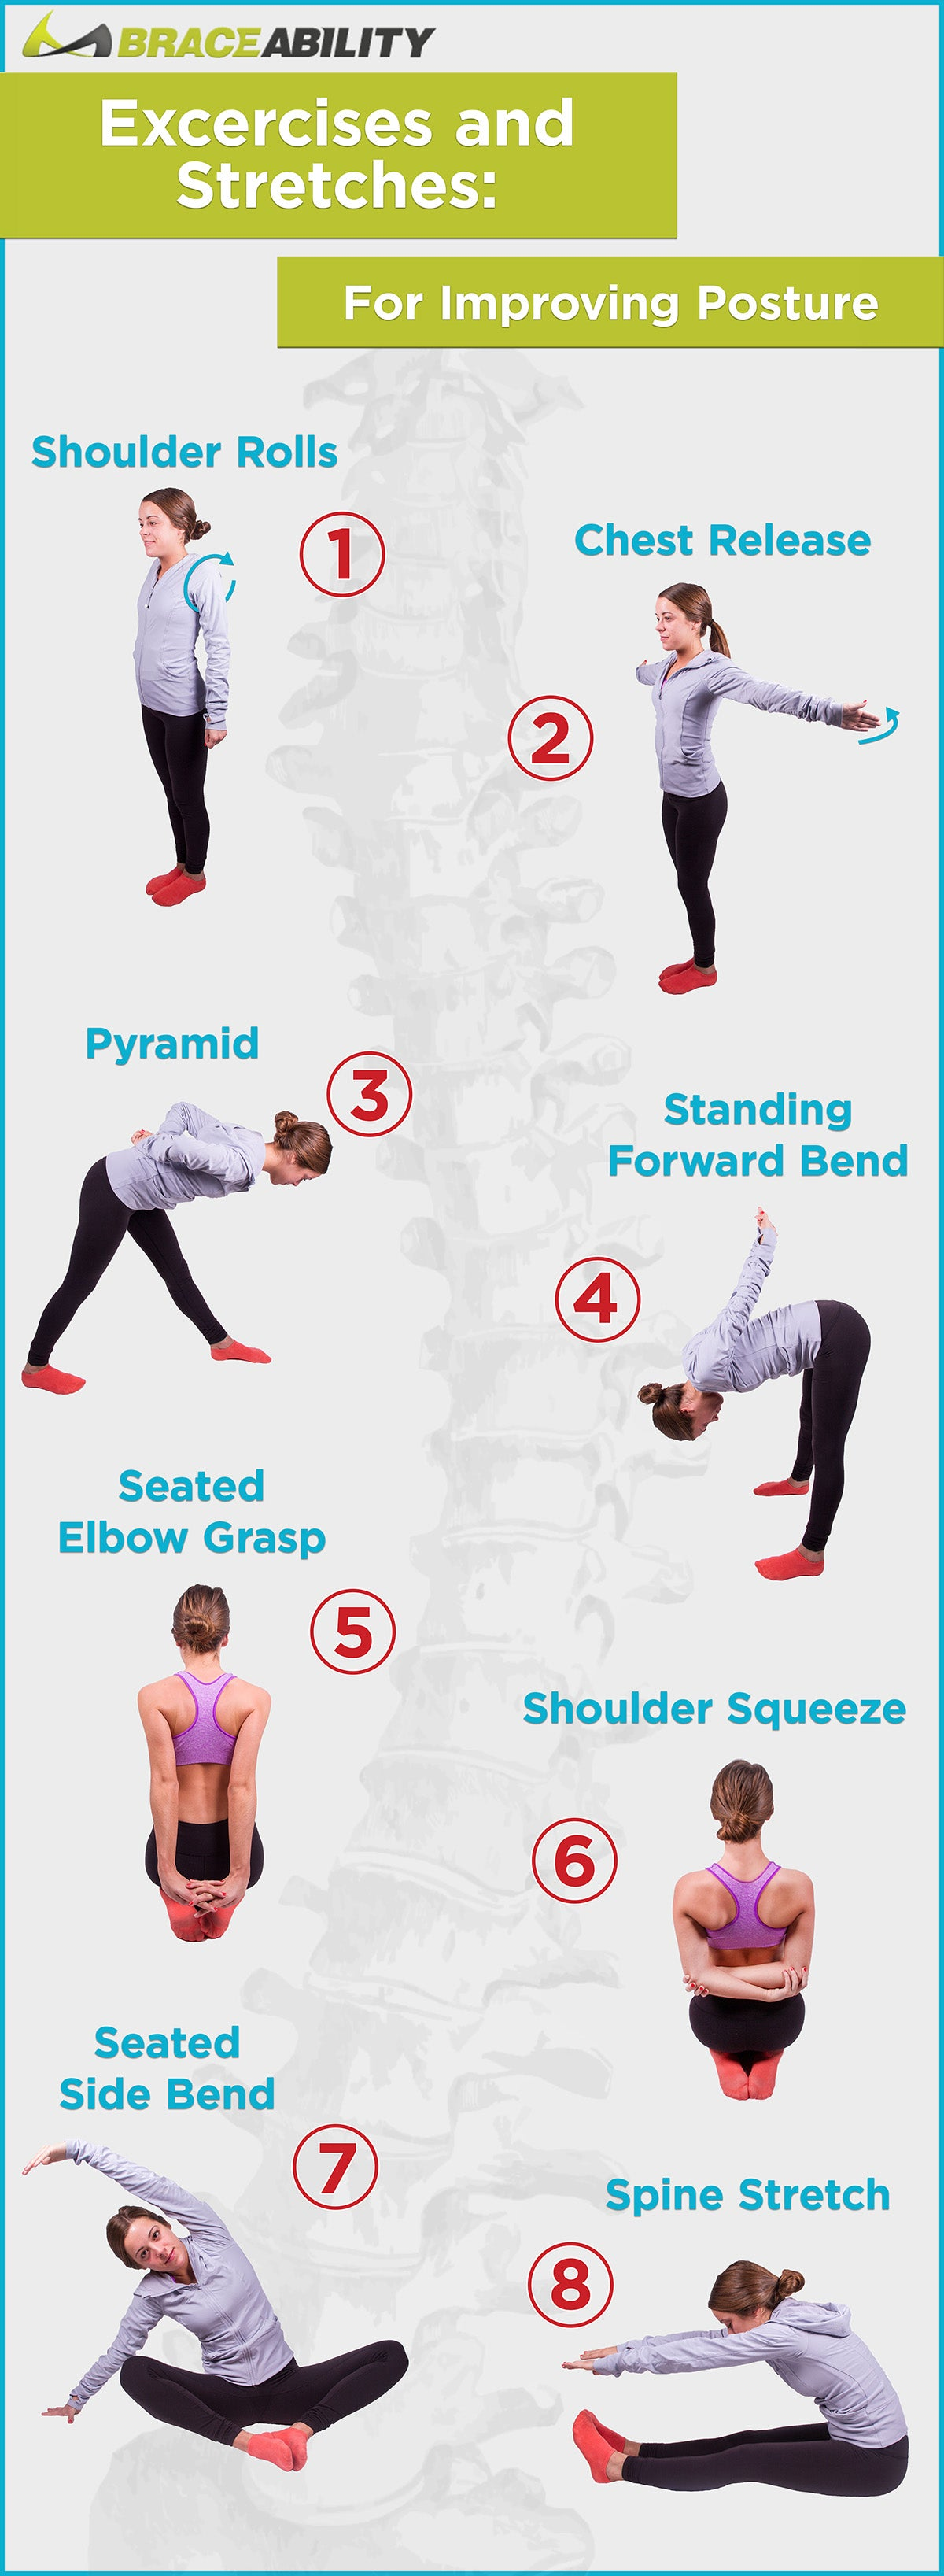 Try these exercises for bad posture and prevent future shoulder problems